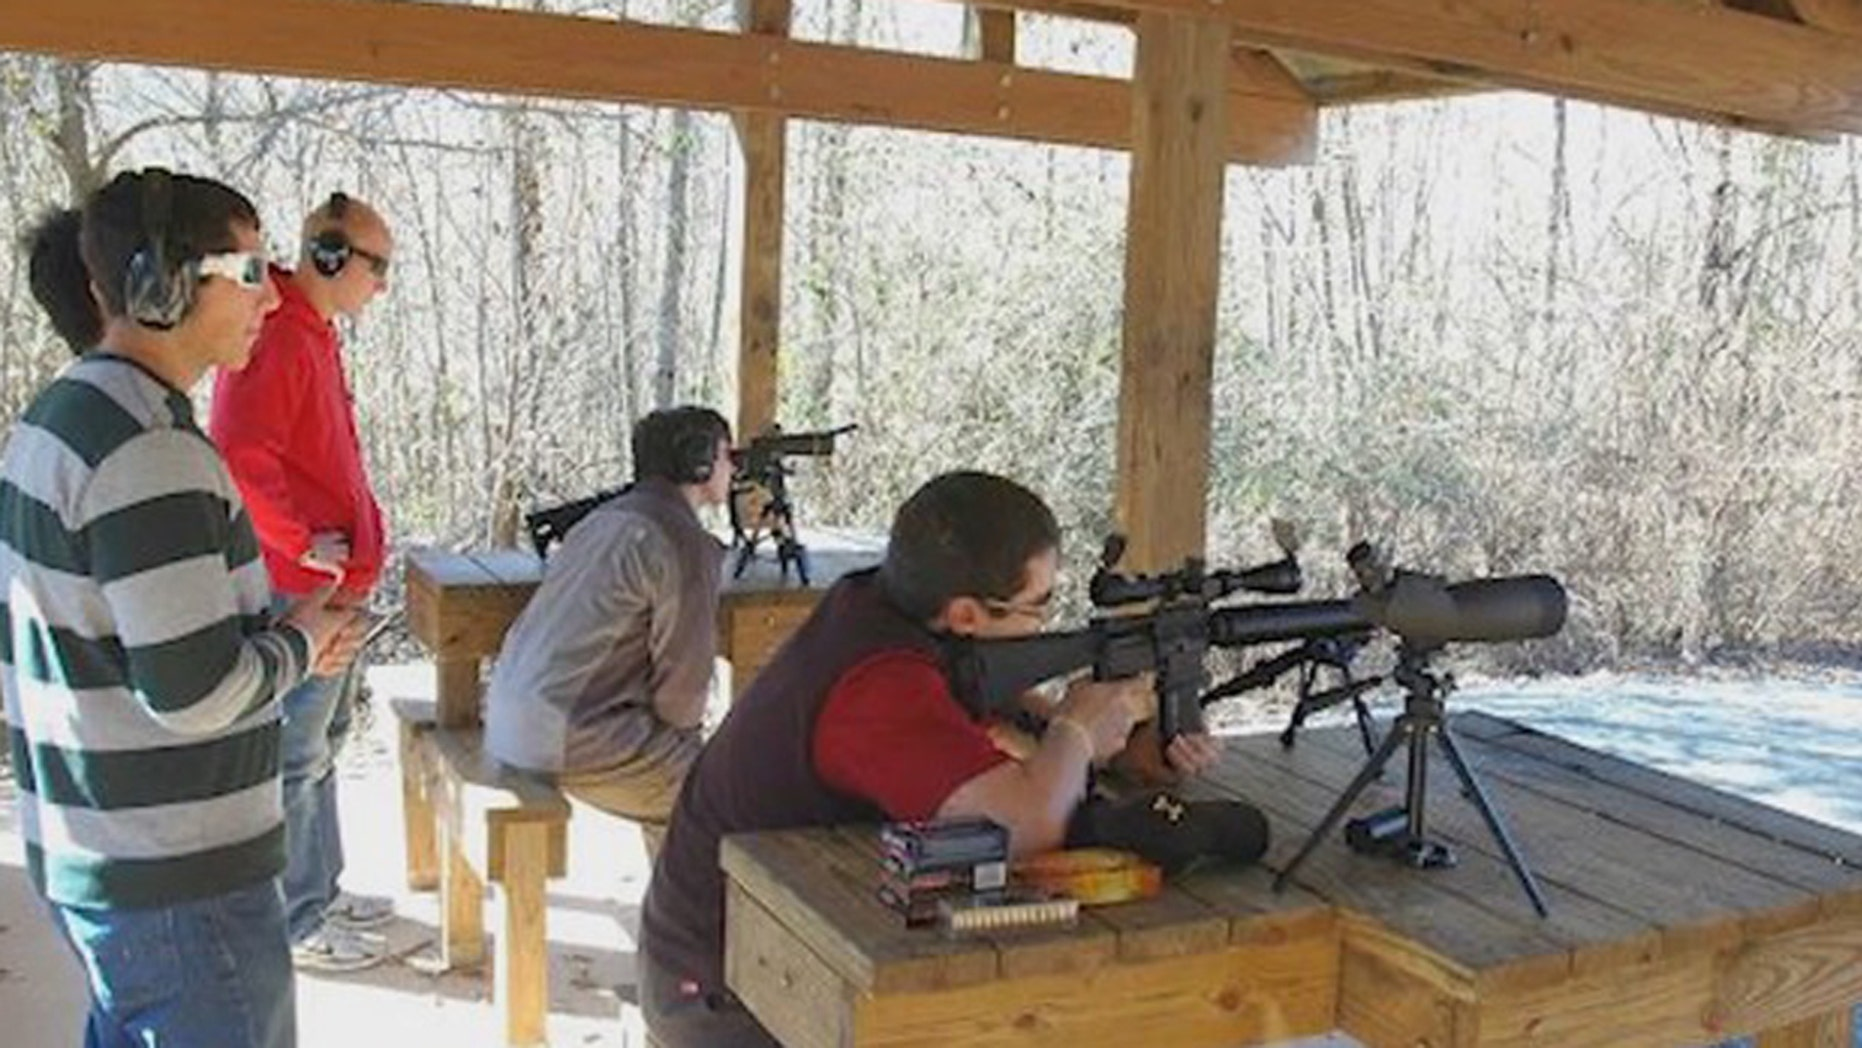 """The Marksmanship Club at Georgia Tech was formed to give students """"education and training in firearms safety."""""""